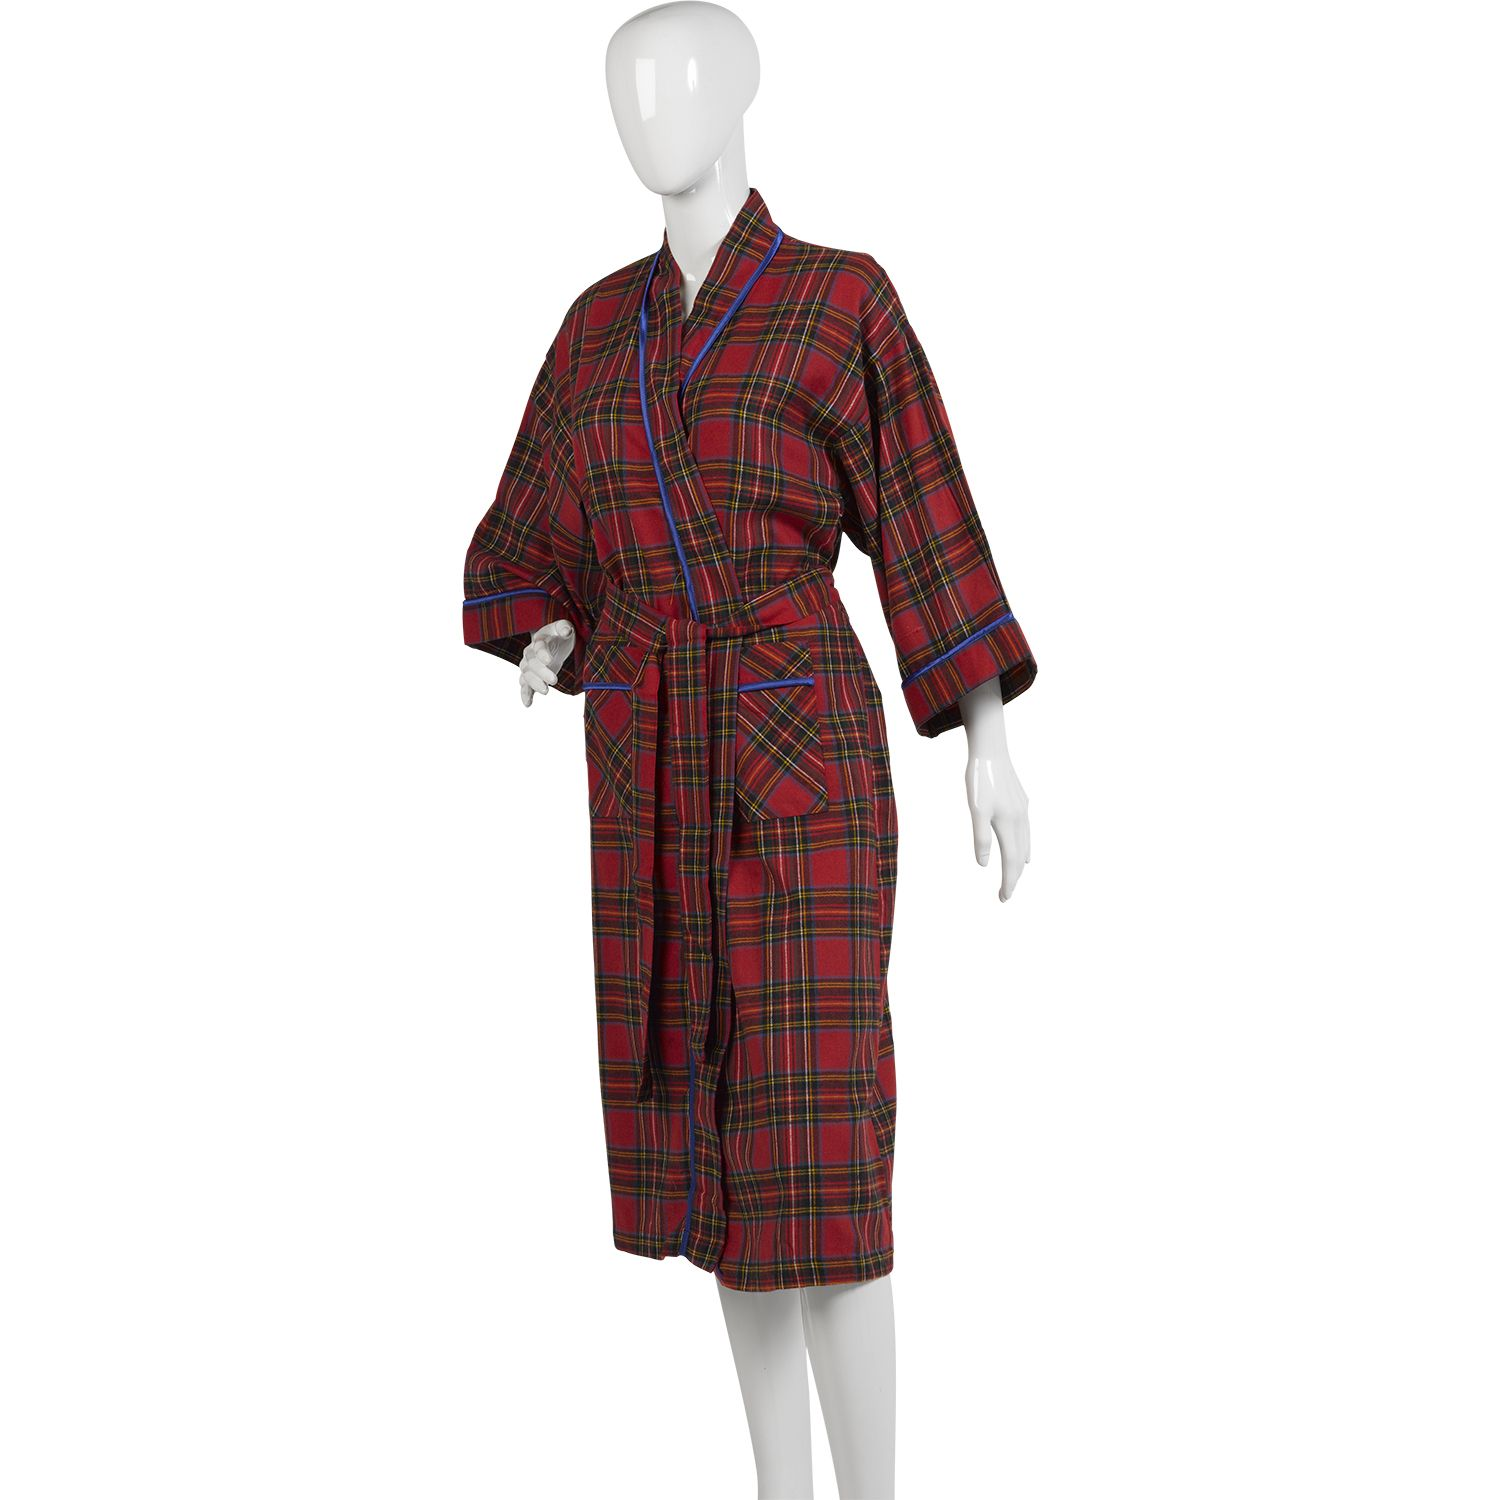 f1c545814e Womens-Combed-Cotton-Tartan-Dressing-Gown-Ladies-Lightweight-Wrap-Check- Bathrobe